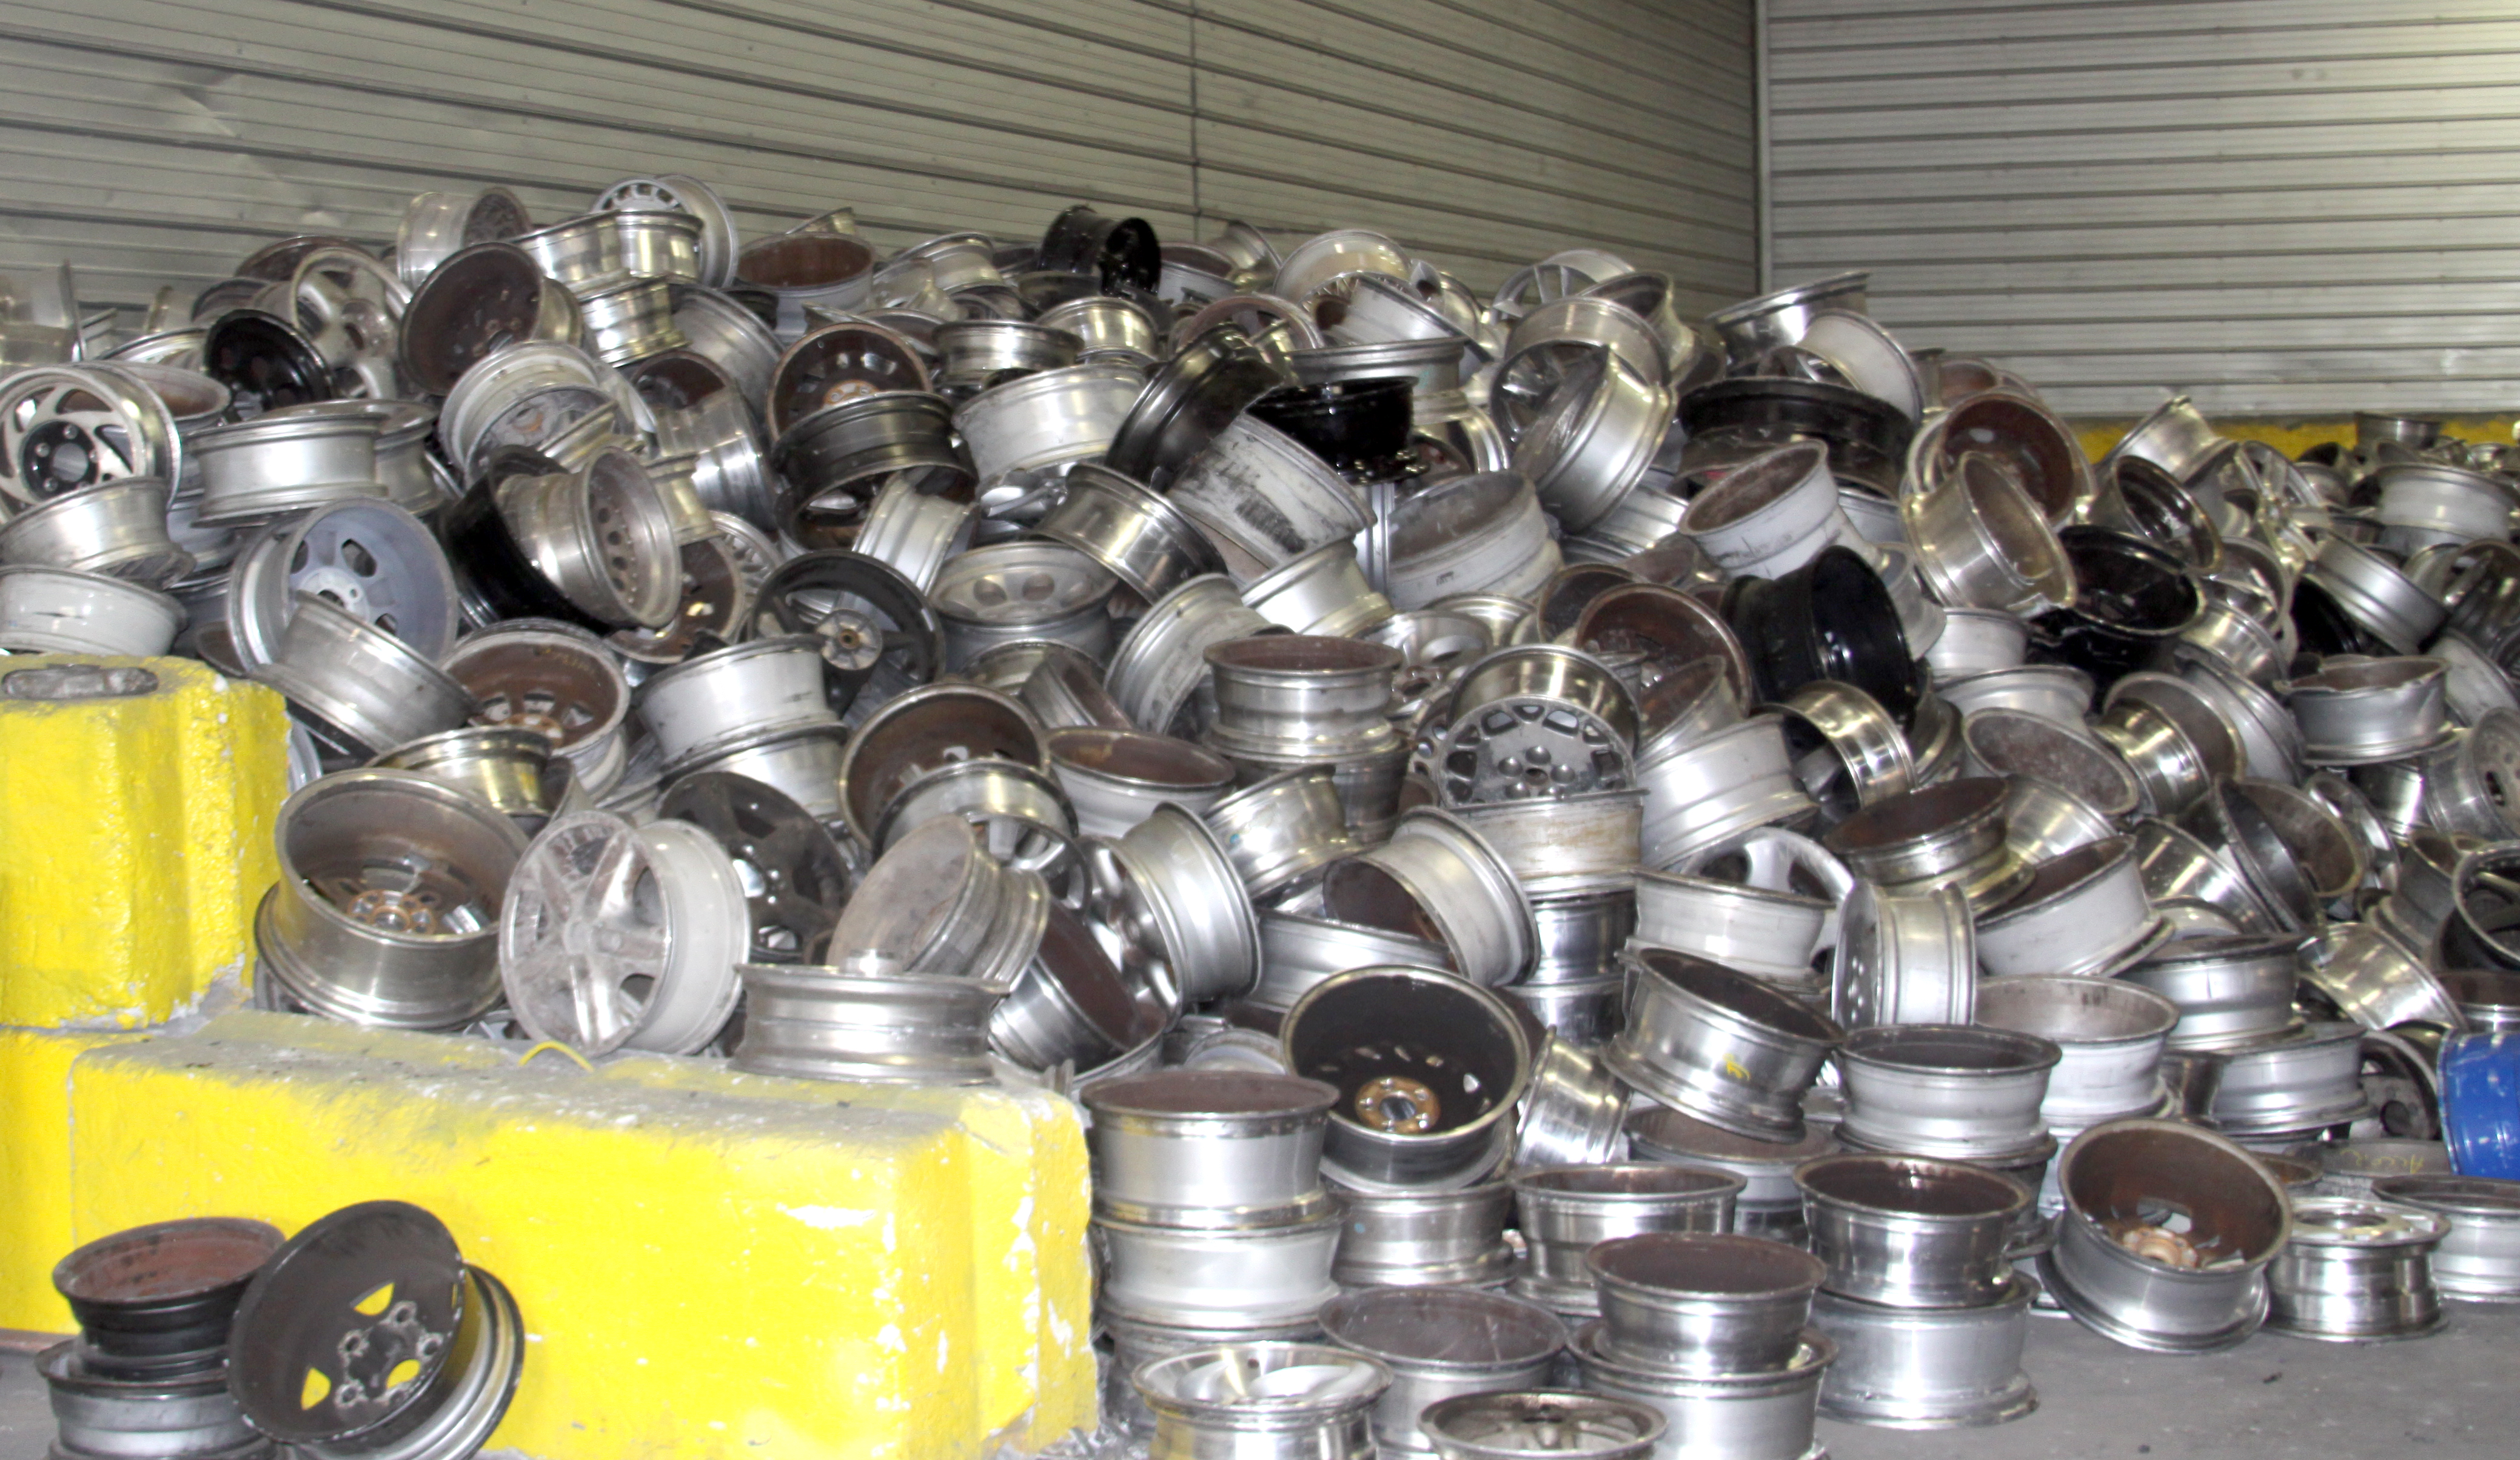 Damaged and discarded aluminum wheels are the raw material that feeds both Stiefel Aluminum and SB Manufacturing.